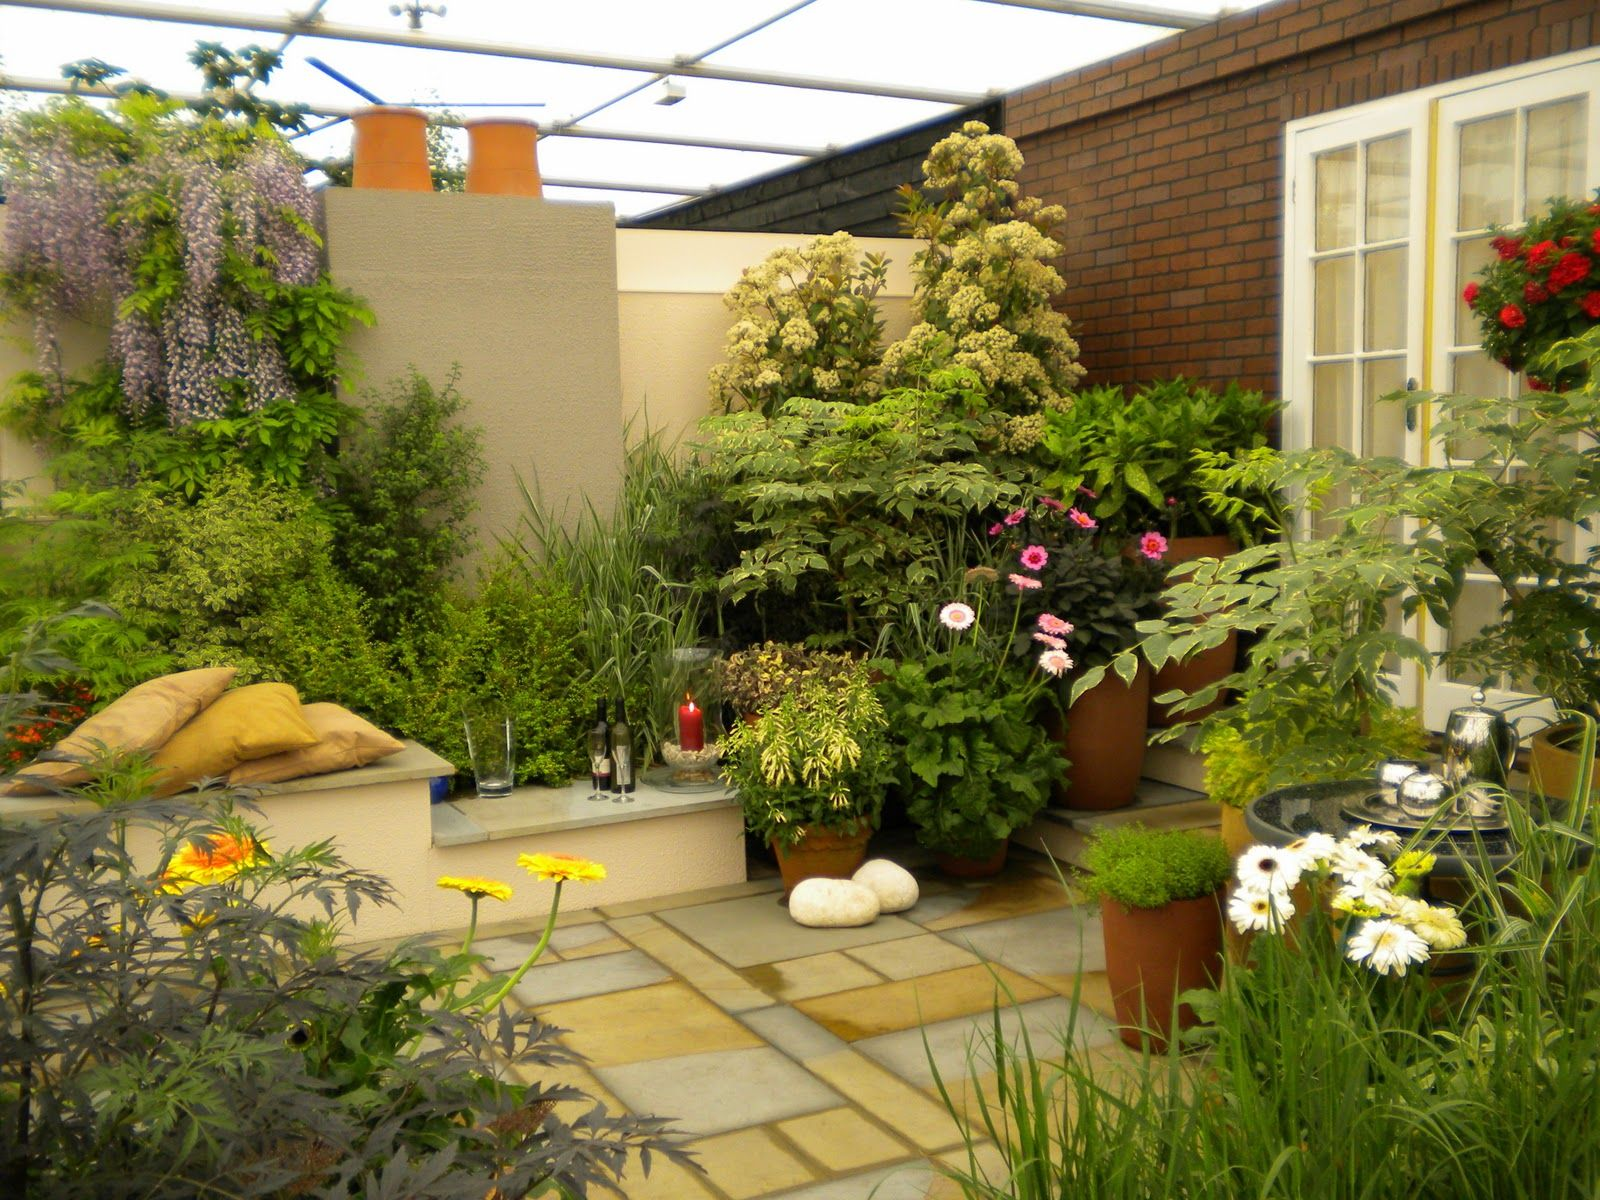 Residential rooftop gardens are a great way to create an attractive and  welcoming environment at home